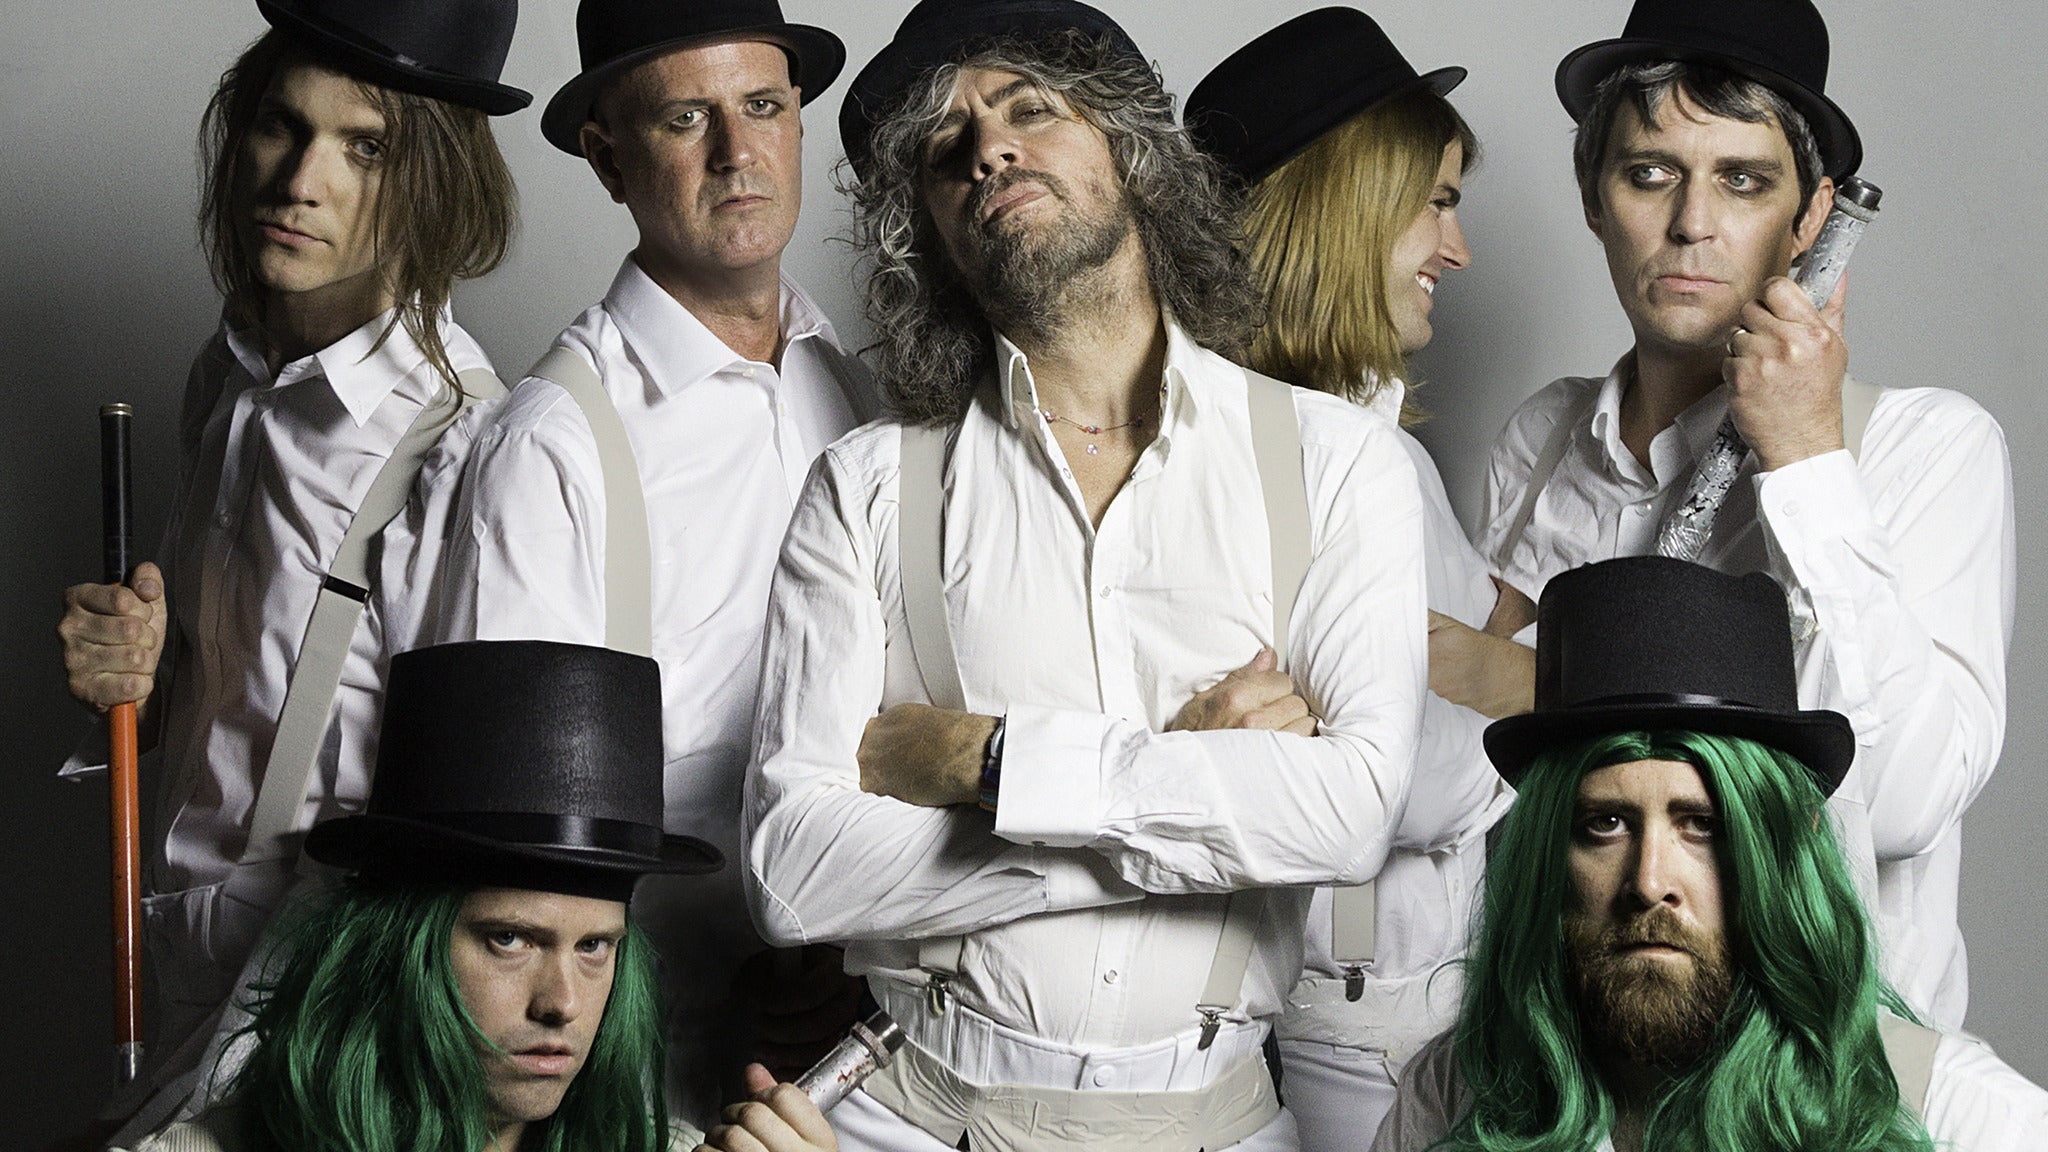 105.7 The Point Welcomes: The Flaming Lips at The Pageant